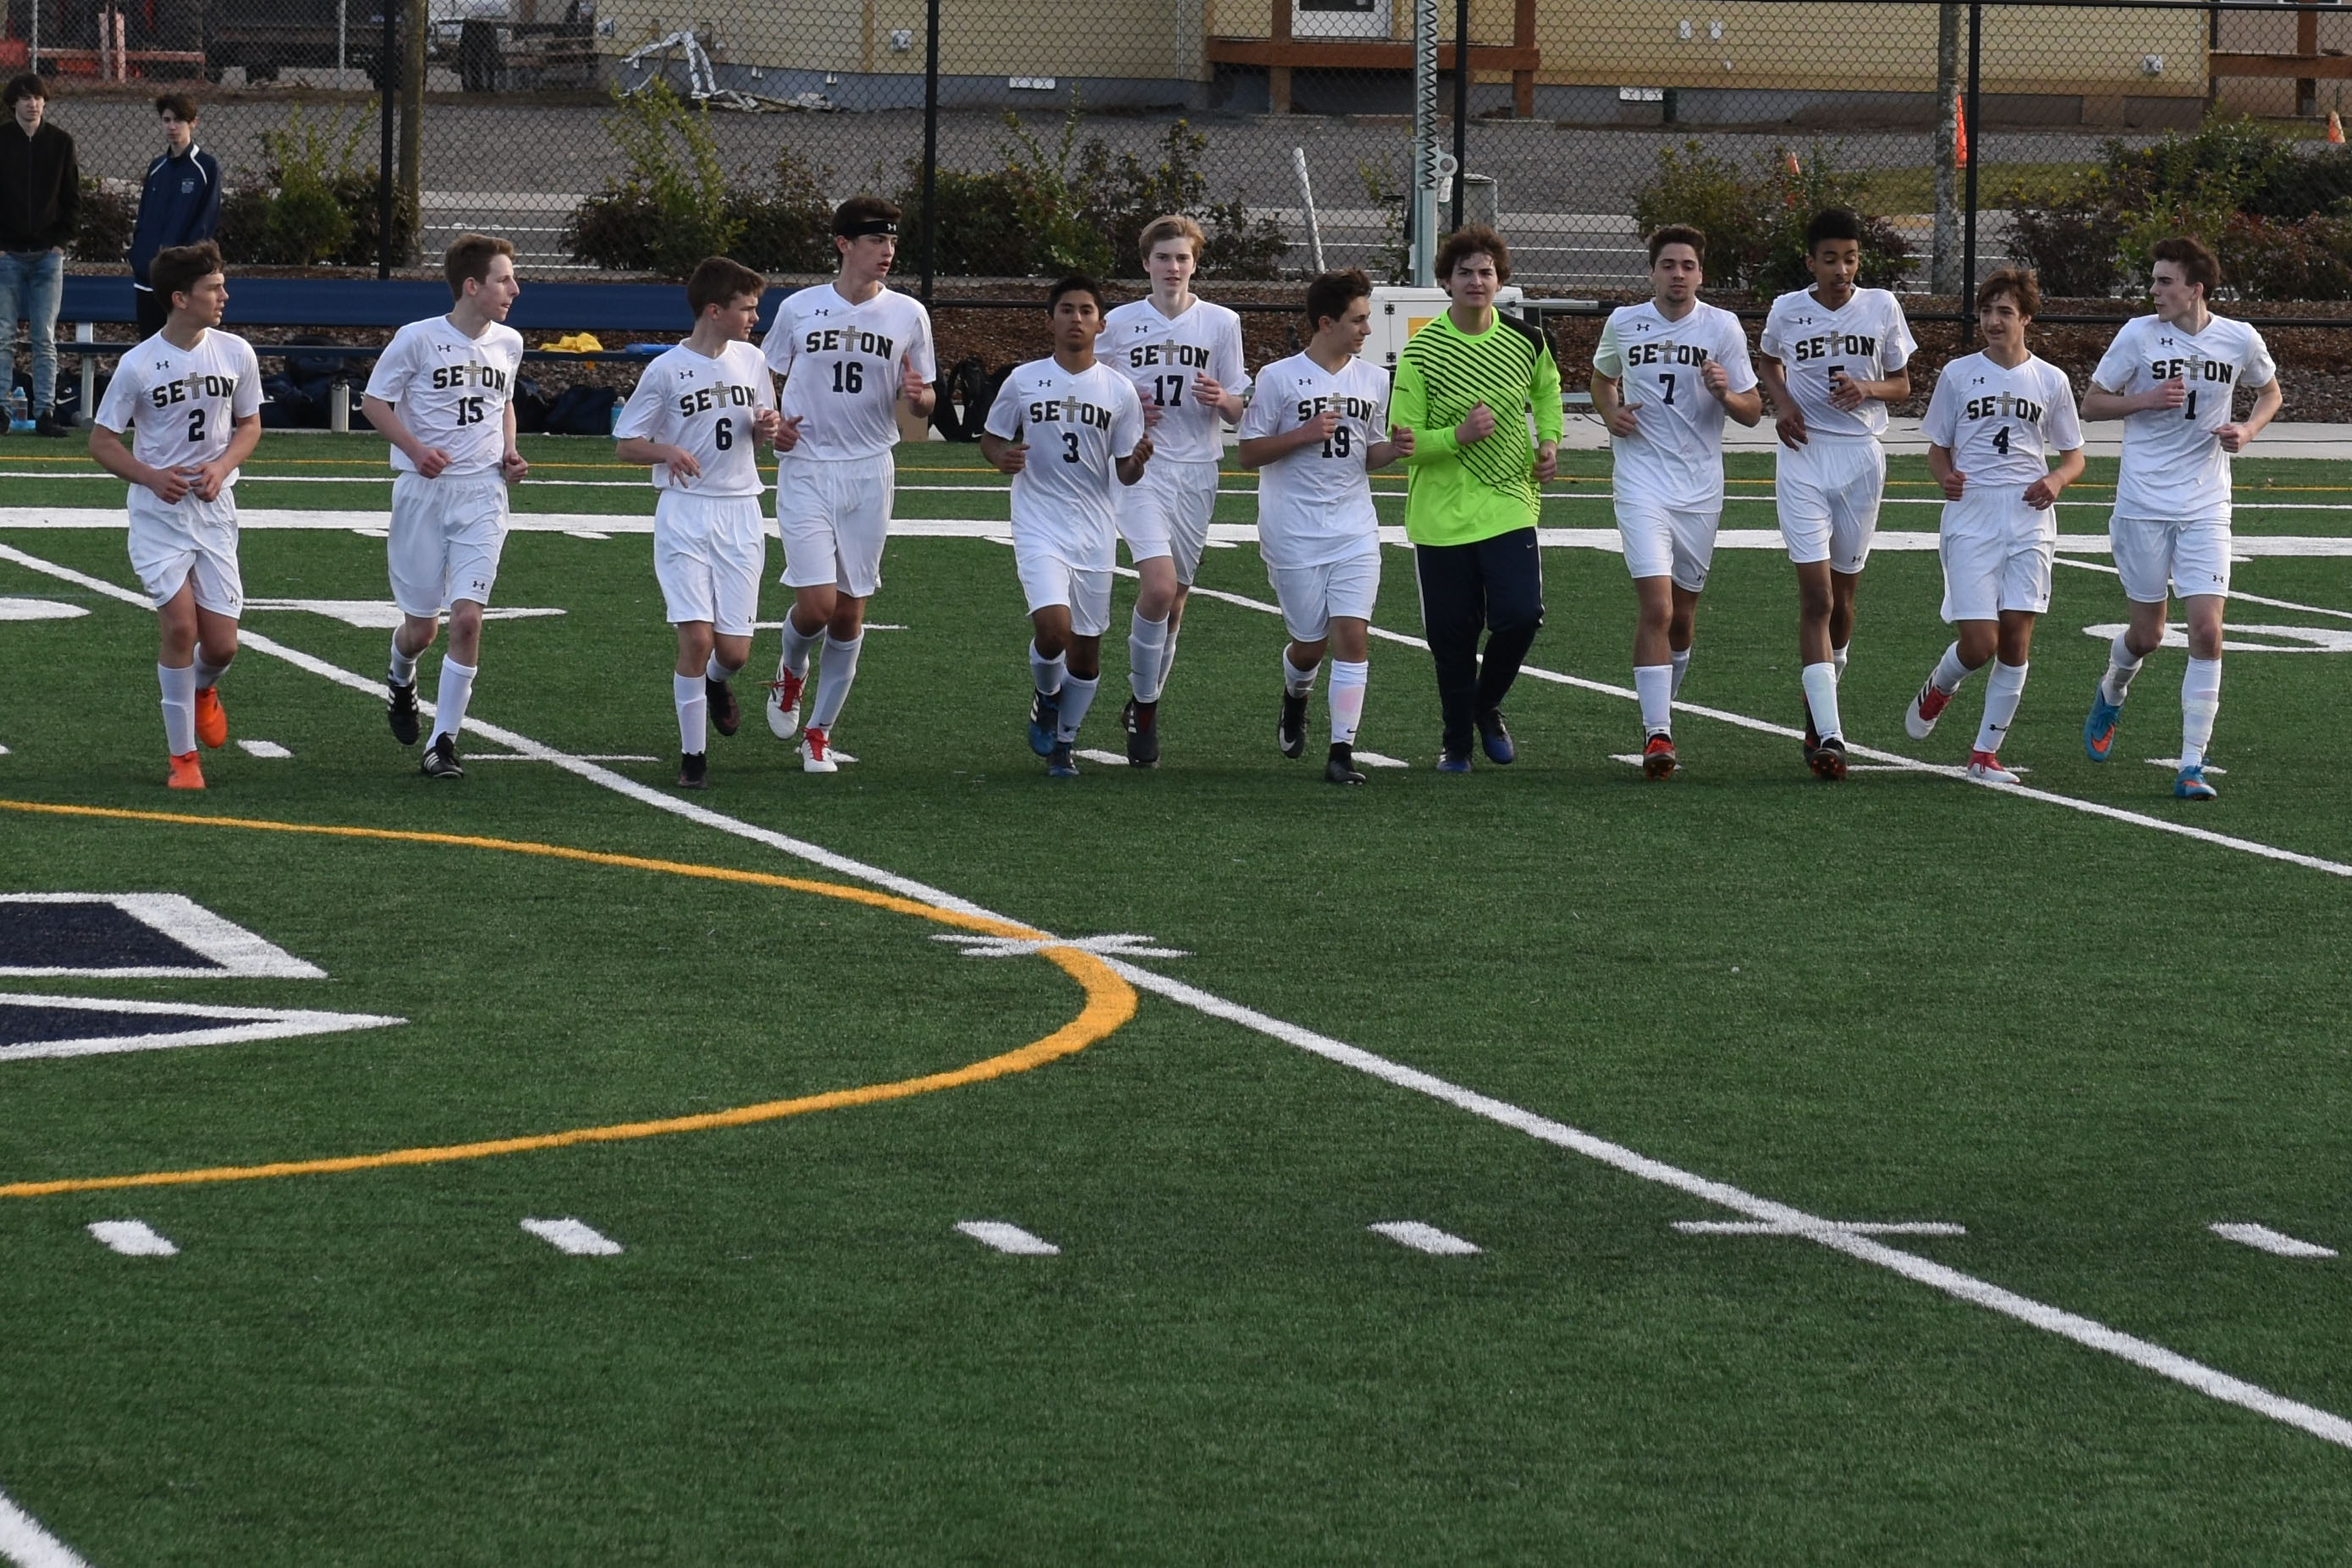 Boys Soccer Beat The Heat And The Bulldogs With 4-0 Victory At Home